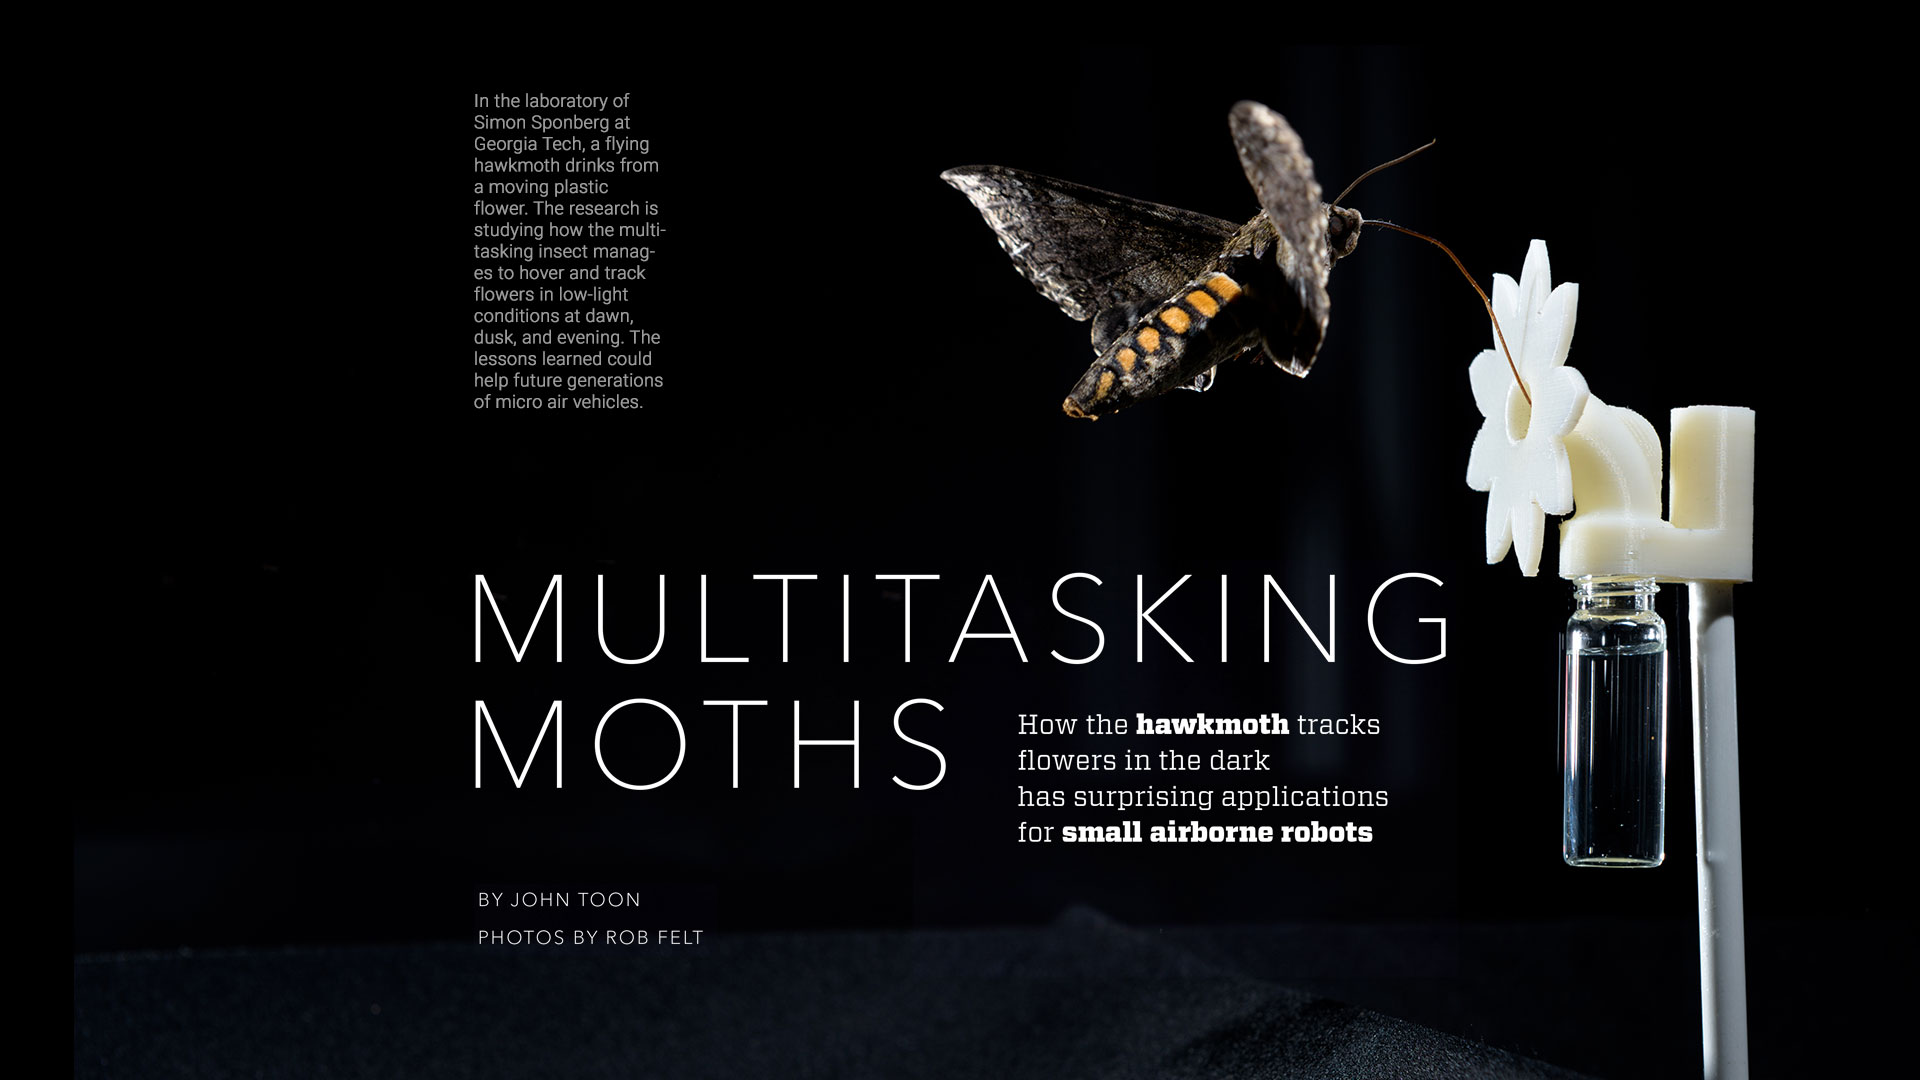 MULTITASKING MOTHS BY JOHN TOON PHOTOS BY ROB FELT How the hawkmoth tracks flowers in the dark has surprising applications for small airborne robots.